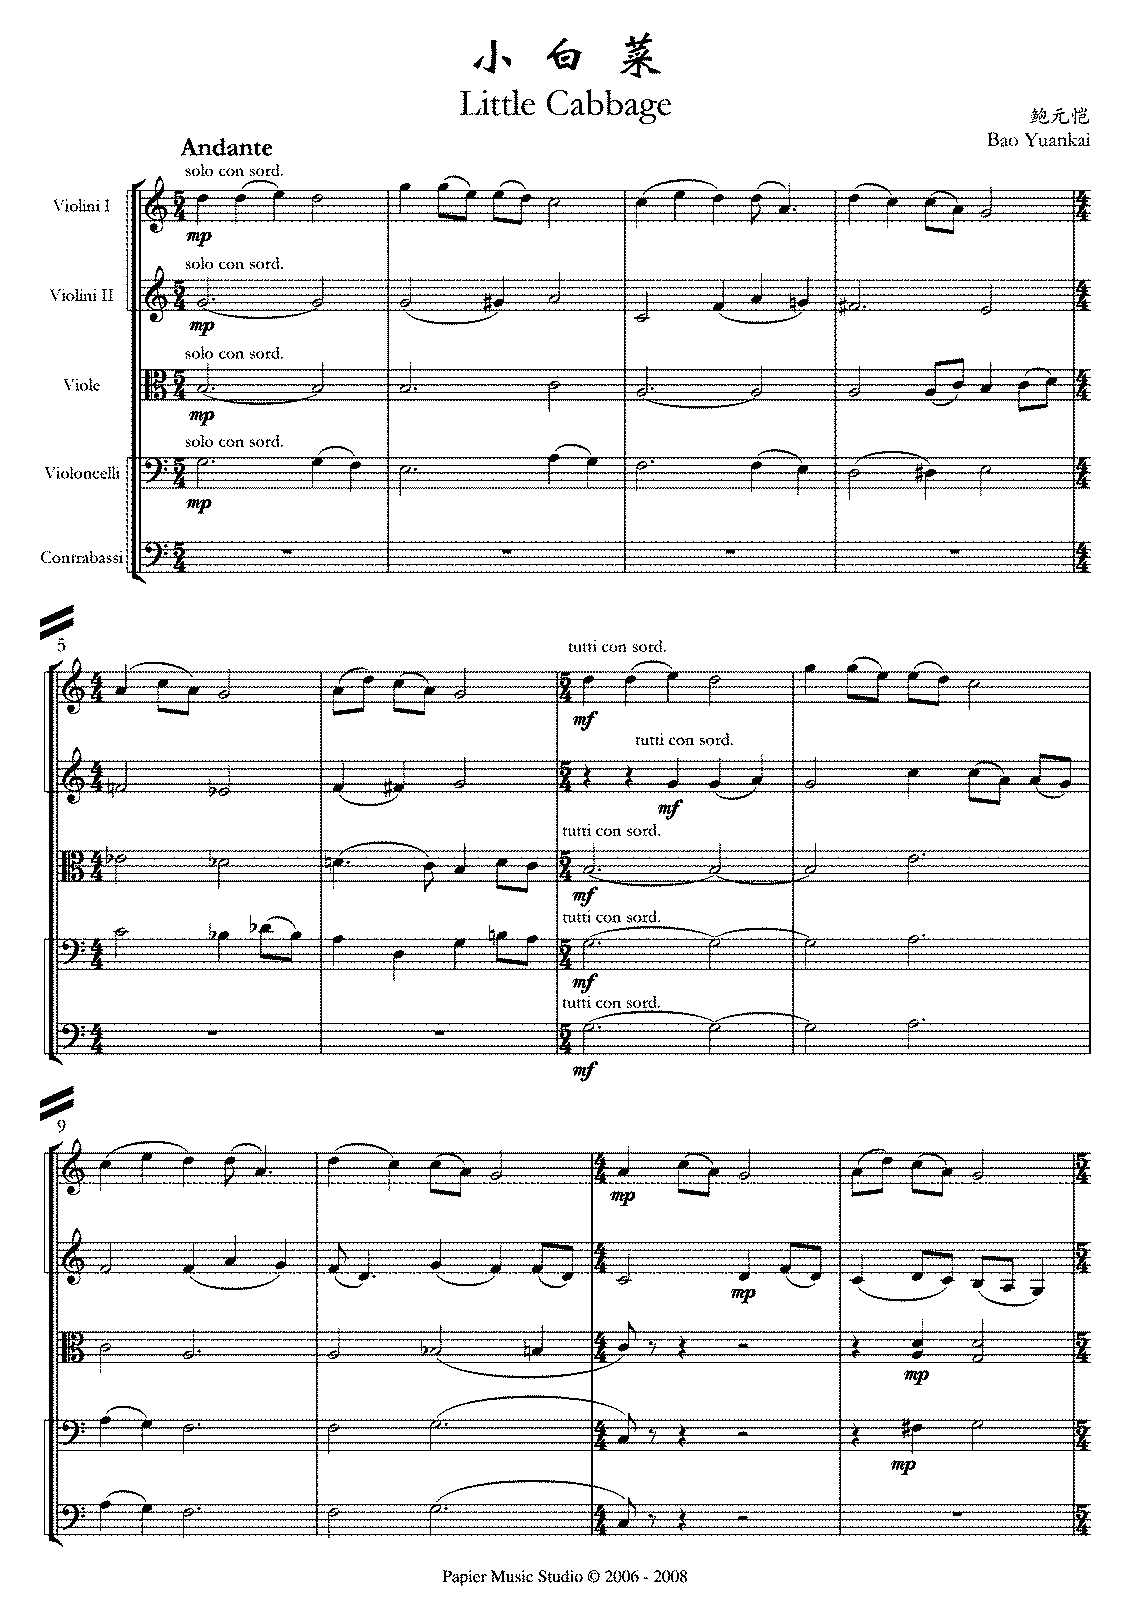 PMLP190161-Littel Cabbage - Full Score.pdf